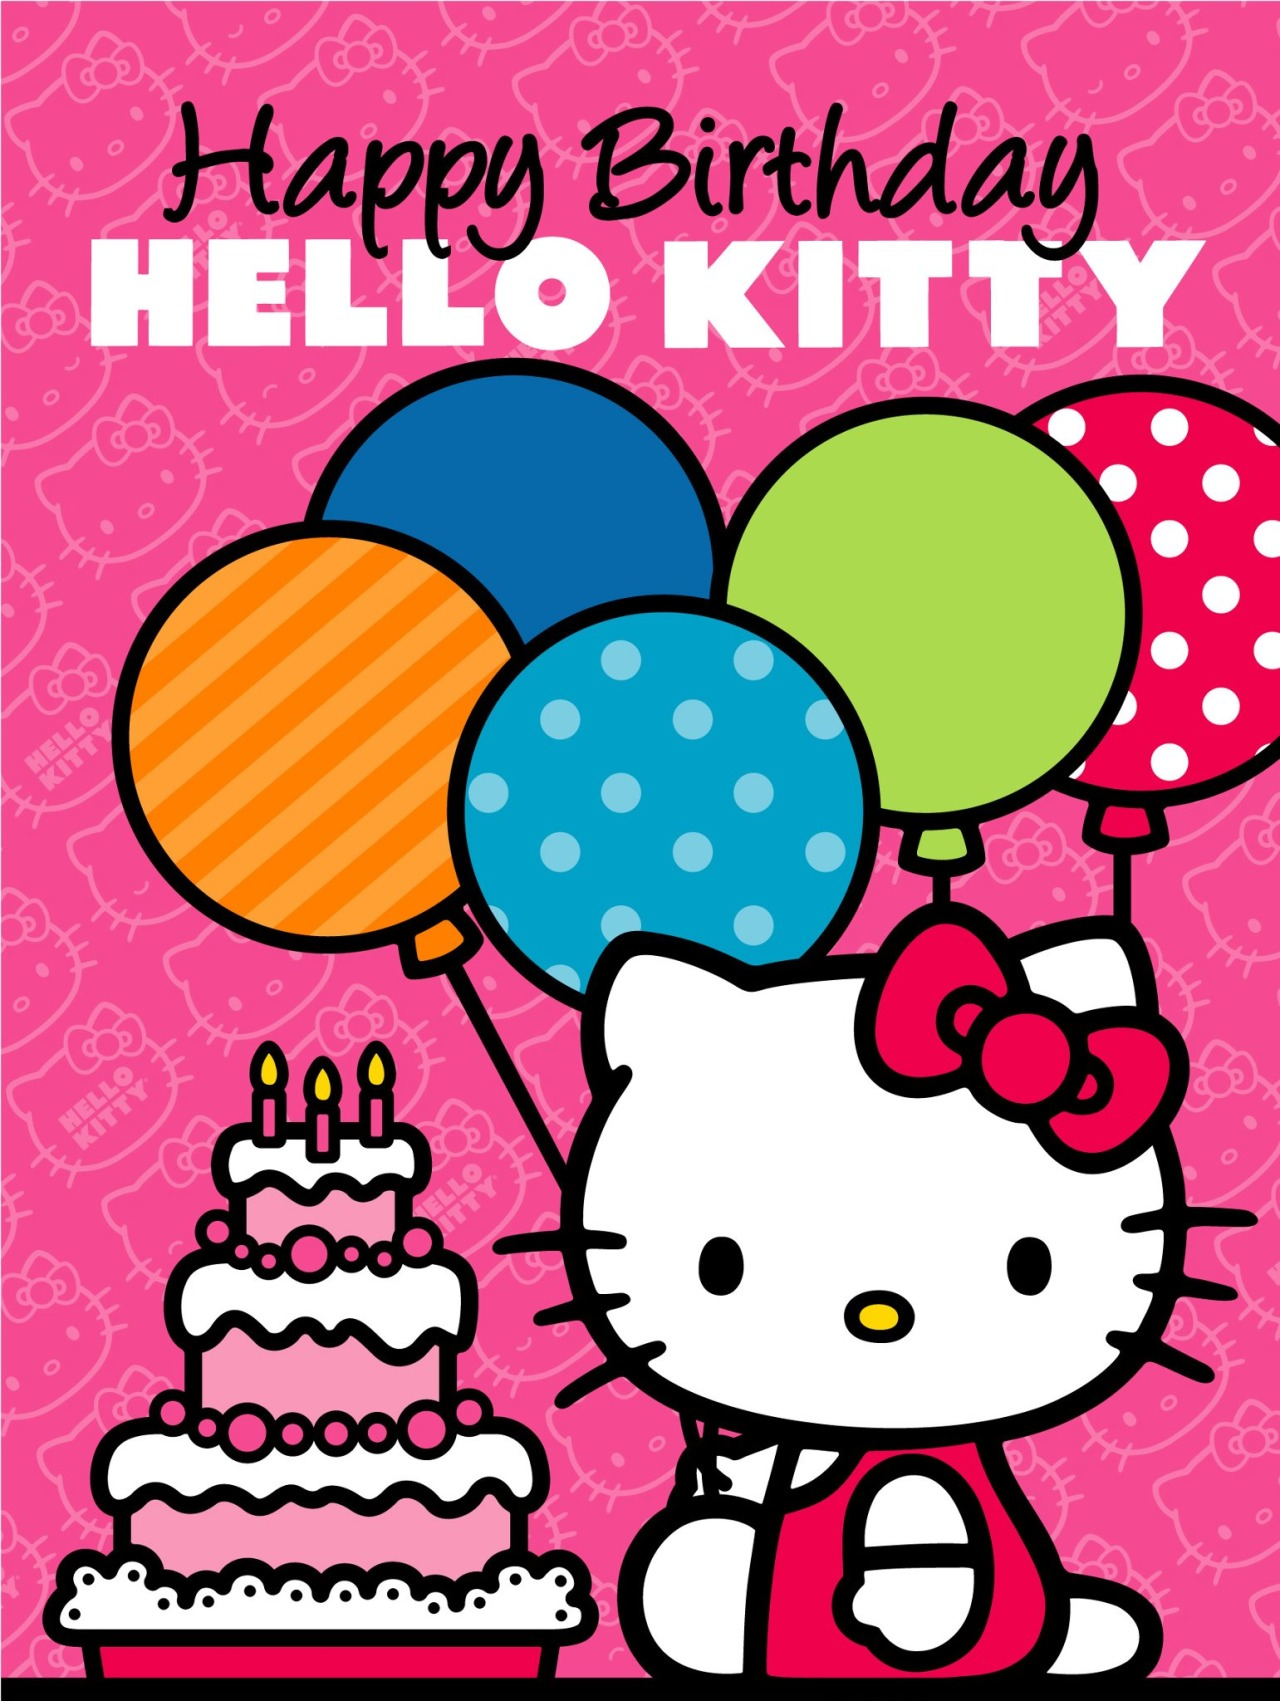 hello kitty happy birthday meme ; e8a45656db6bdaa173df0671921df692